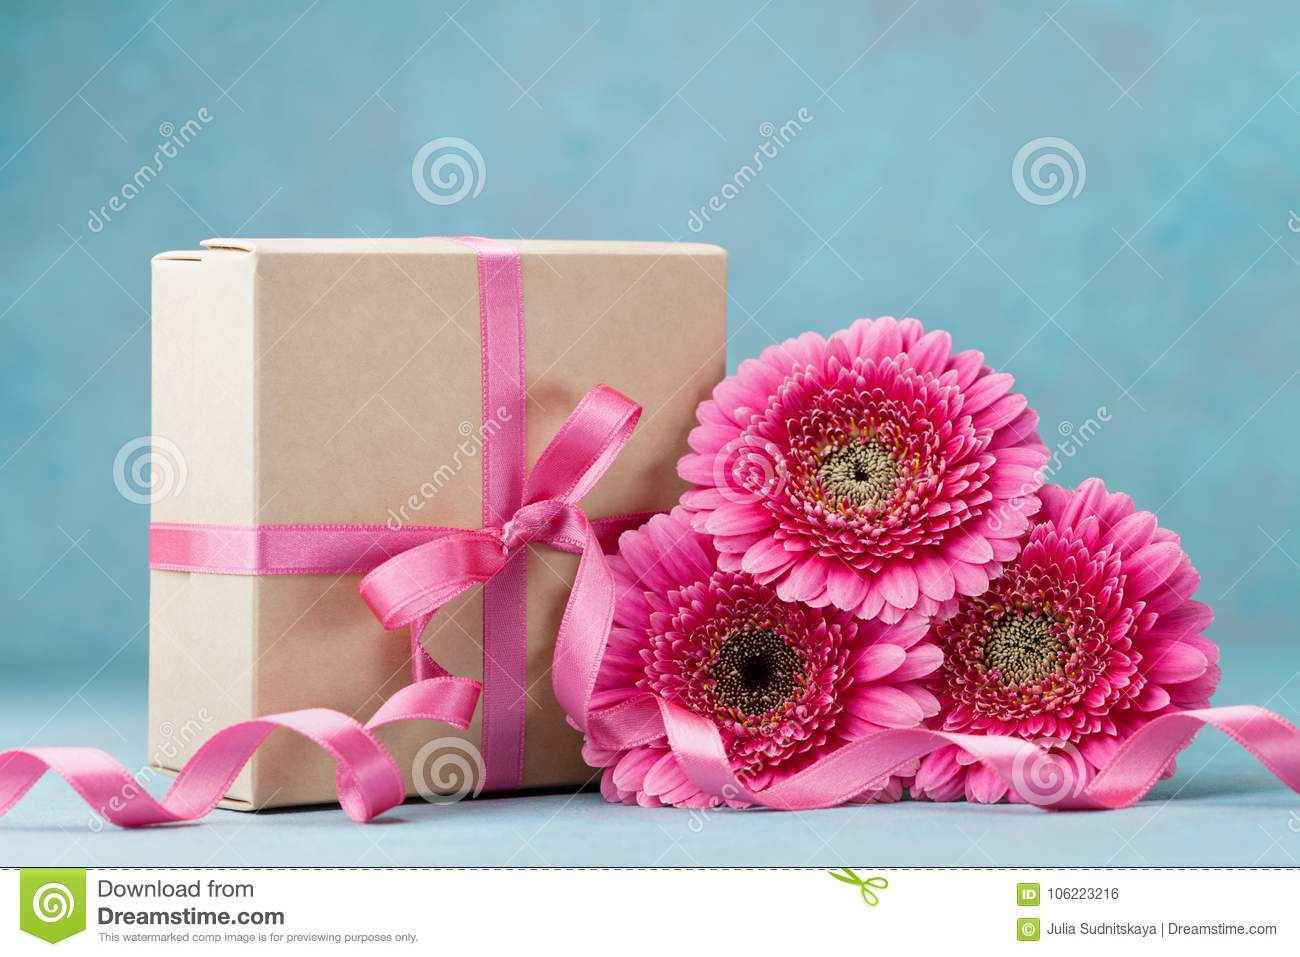 Beautiful pink gerbera flowers and gift box with ribbon on turquoise beautiful pink gerbera flowers and gift box with ribbon on turquoise table greeting card for birthday woman or mothers day stock photo image of desk izmirmasajfo